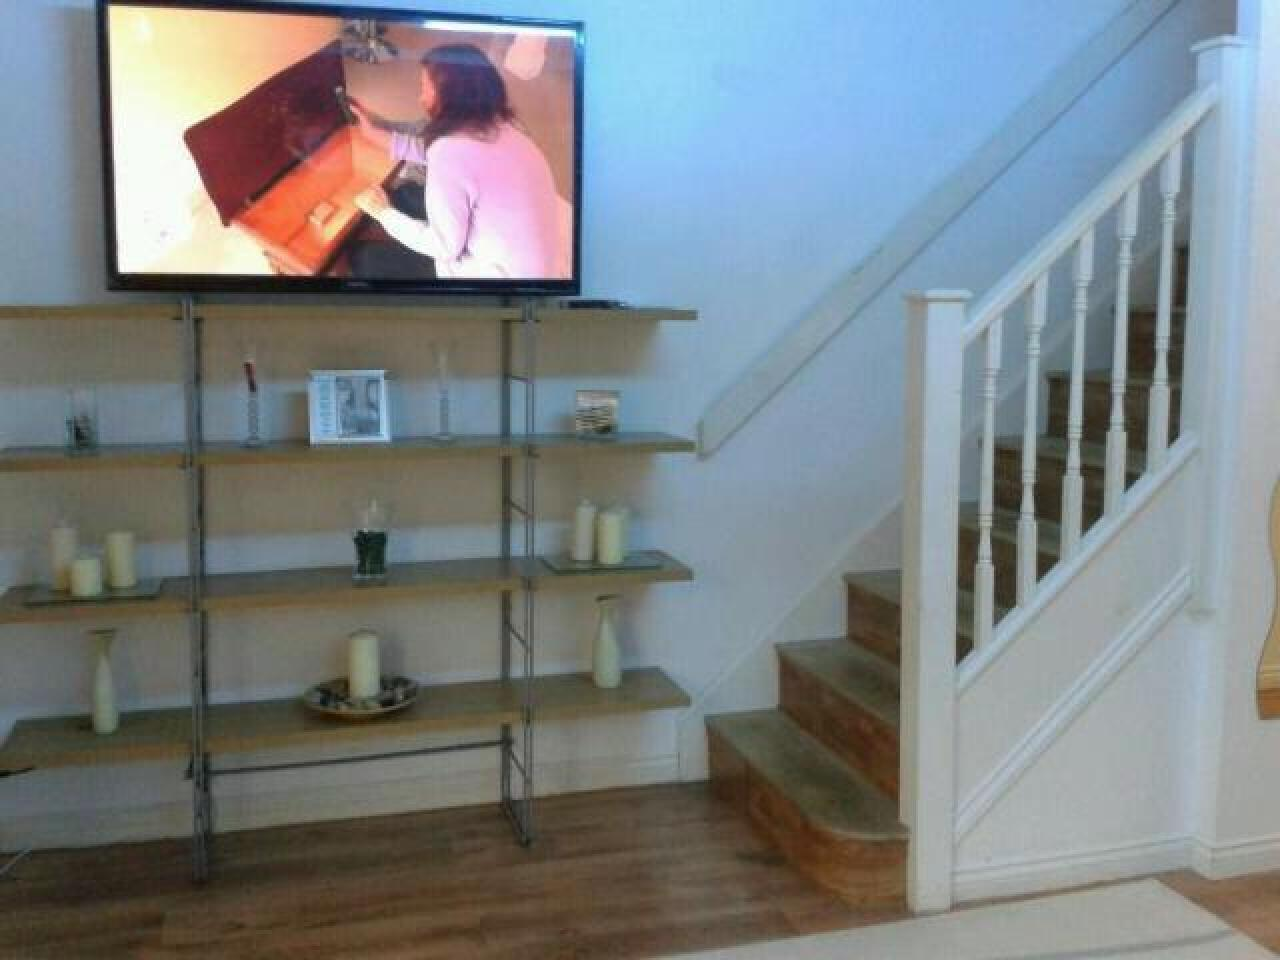 3 Bed House, Keel Close Barking, IG1 1 650 £ — Available Now - 4